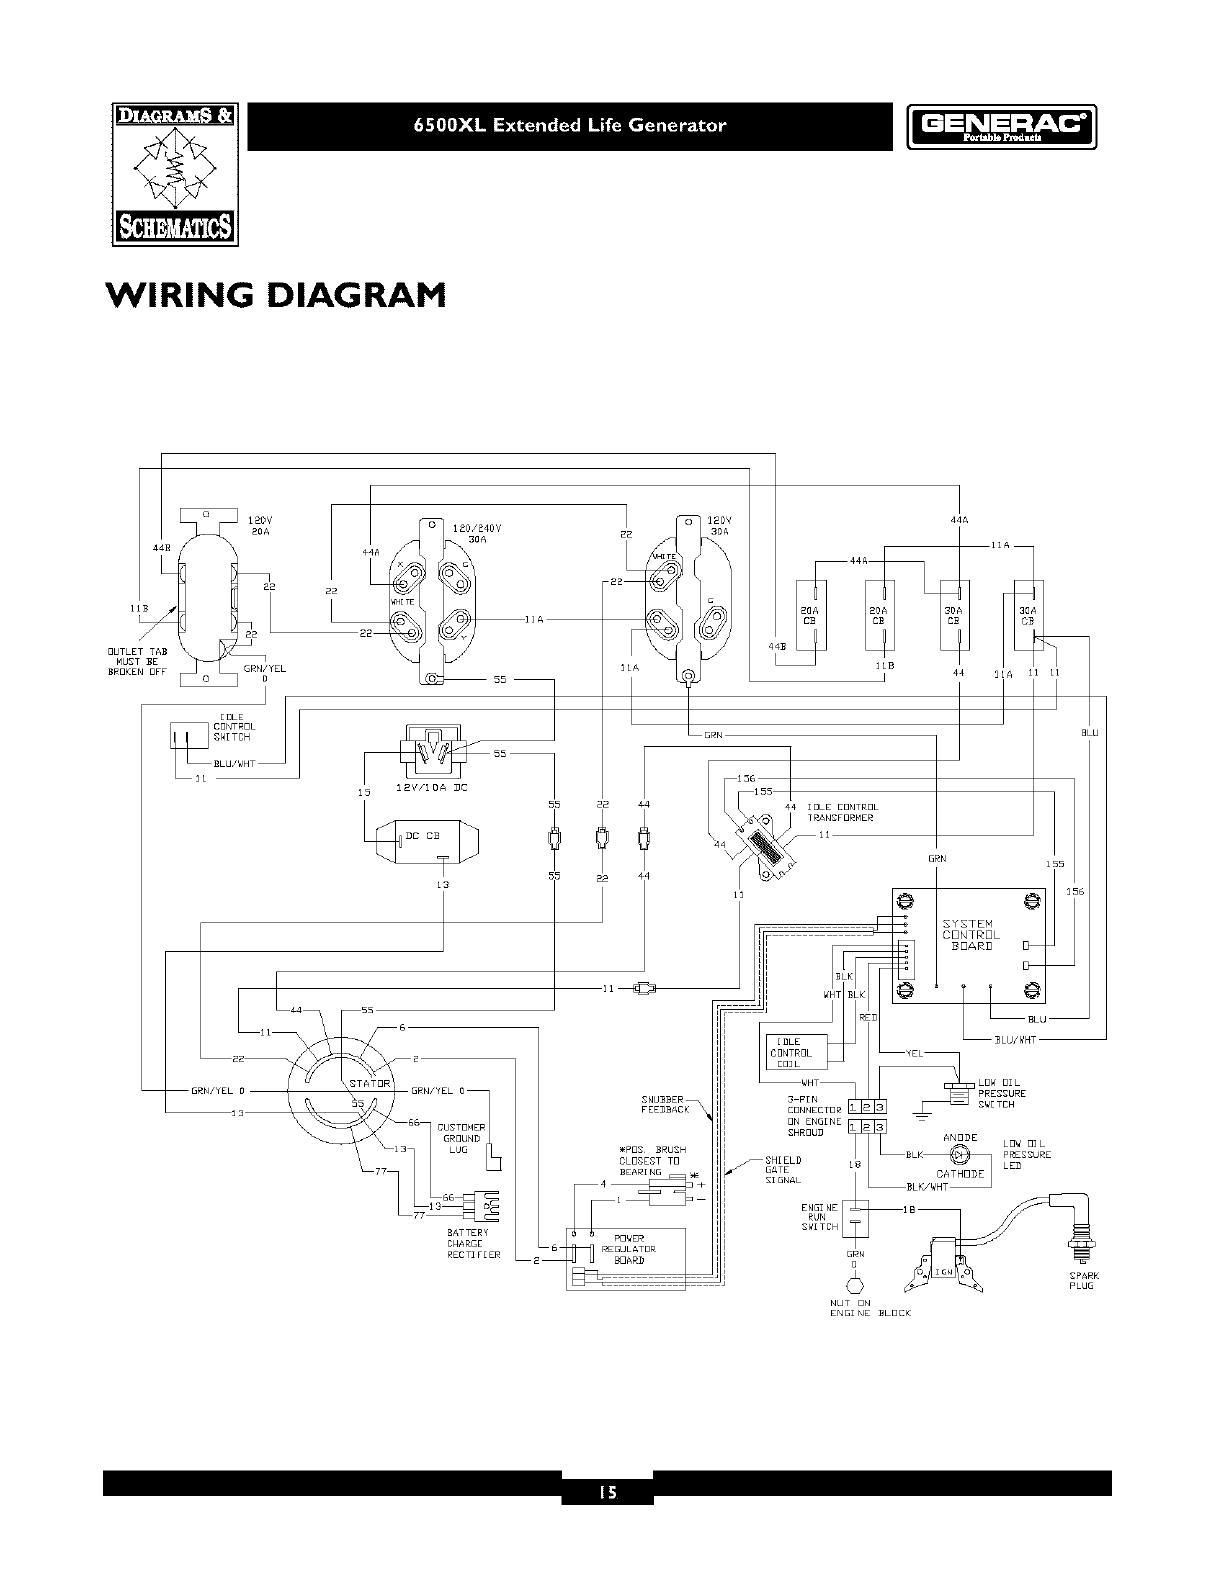 abacbfe4 09c9 46f3 b904 b7a0ca98baaa bgf page 15 of generac portable generator 6500xl user guide abac air compressor wiring diagram at webbmarketing.co